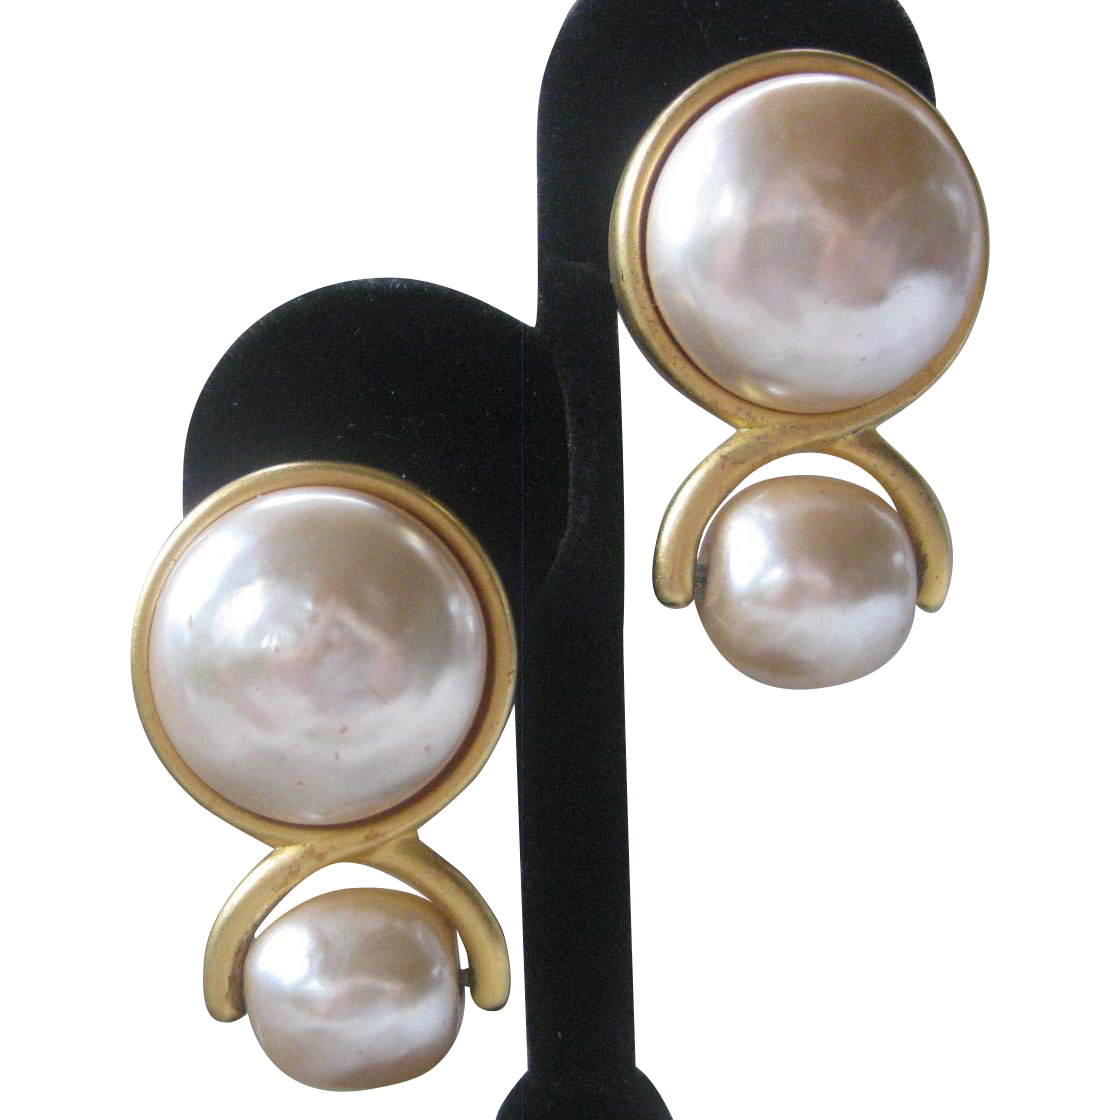 KARL LAGERFELD Stunning Large Pearls Vintage Earrings